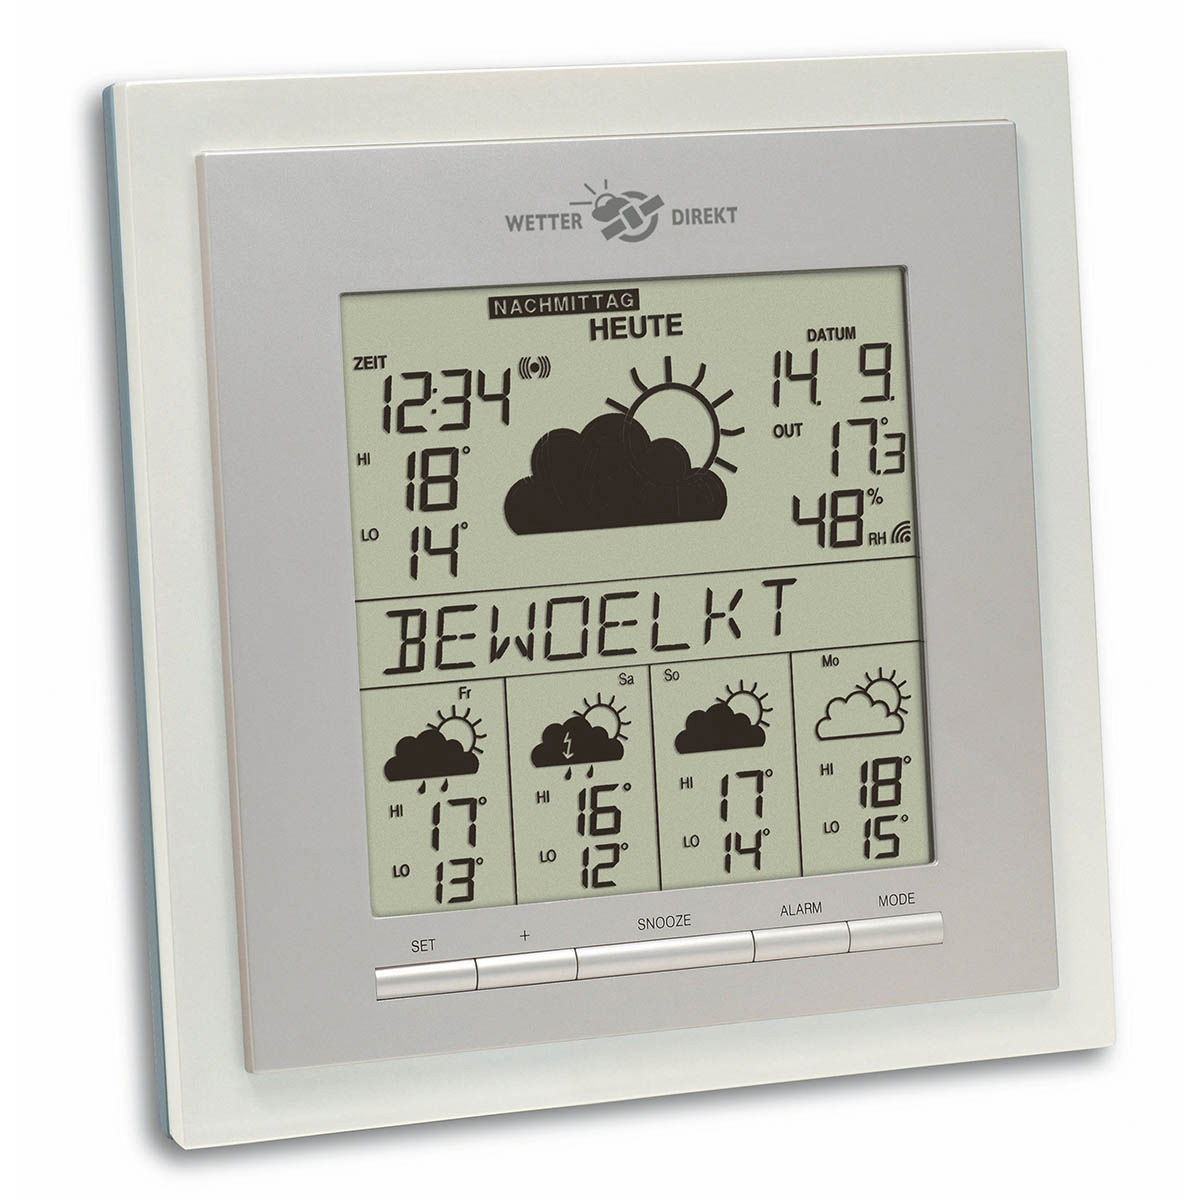 35-5017-it-satellitengestützte-funk-wetterstation-eos-info-1200x1200px.jpg